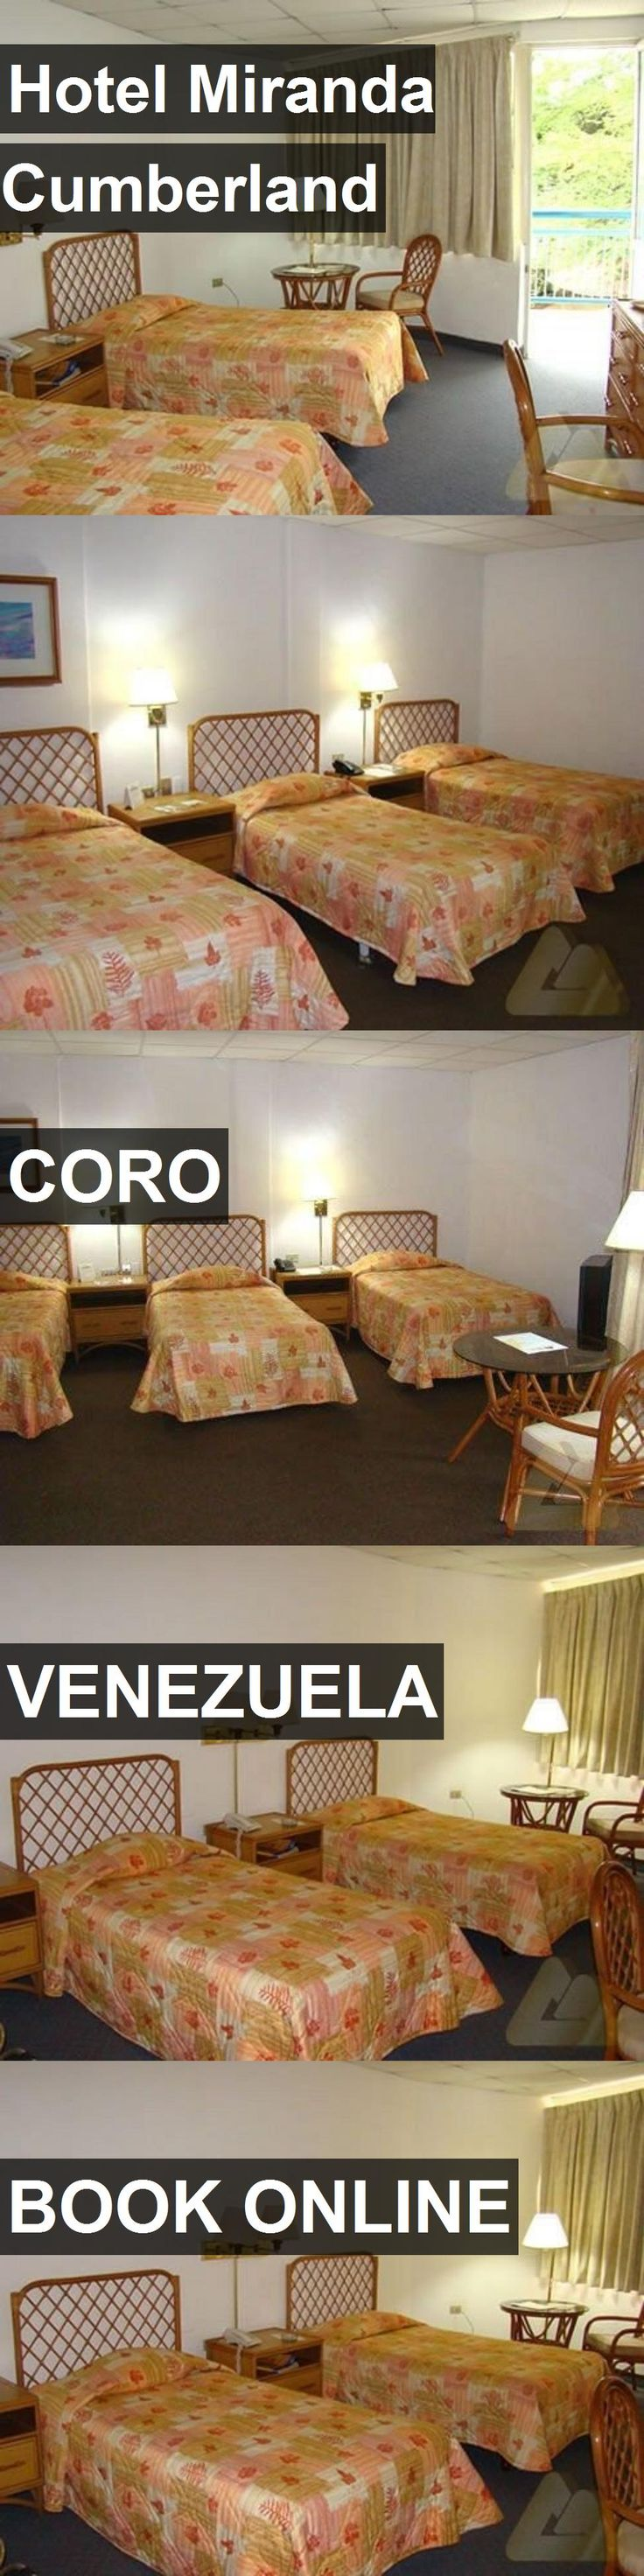 Hotel Miranda Cumberland in Coro, Venezuela. For more information, photos, reviews and best prices please follow the link. #Venezuela #Coro #travel #vacation #hotel